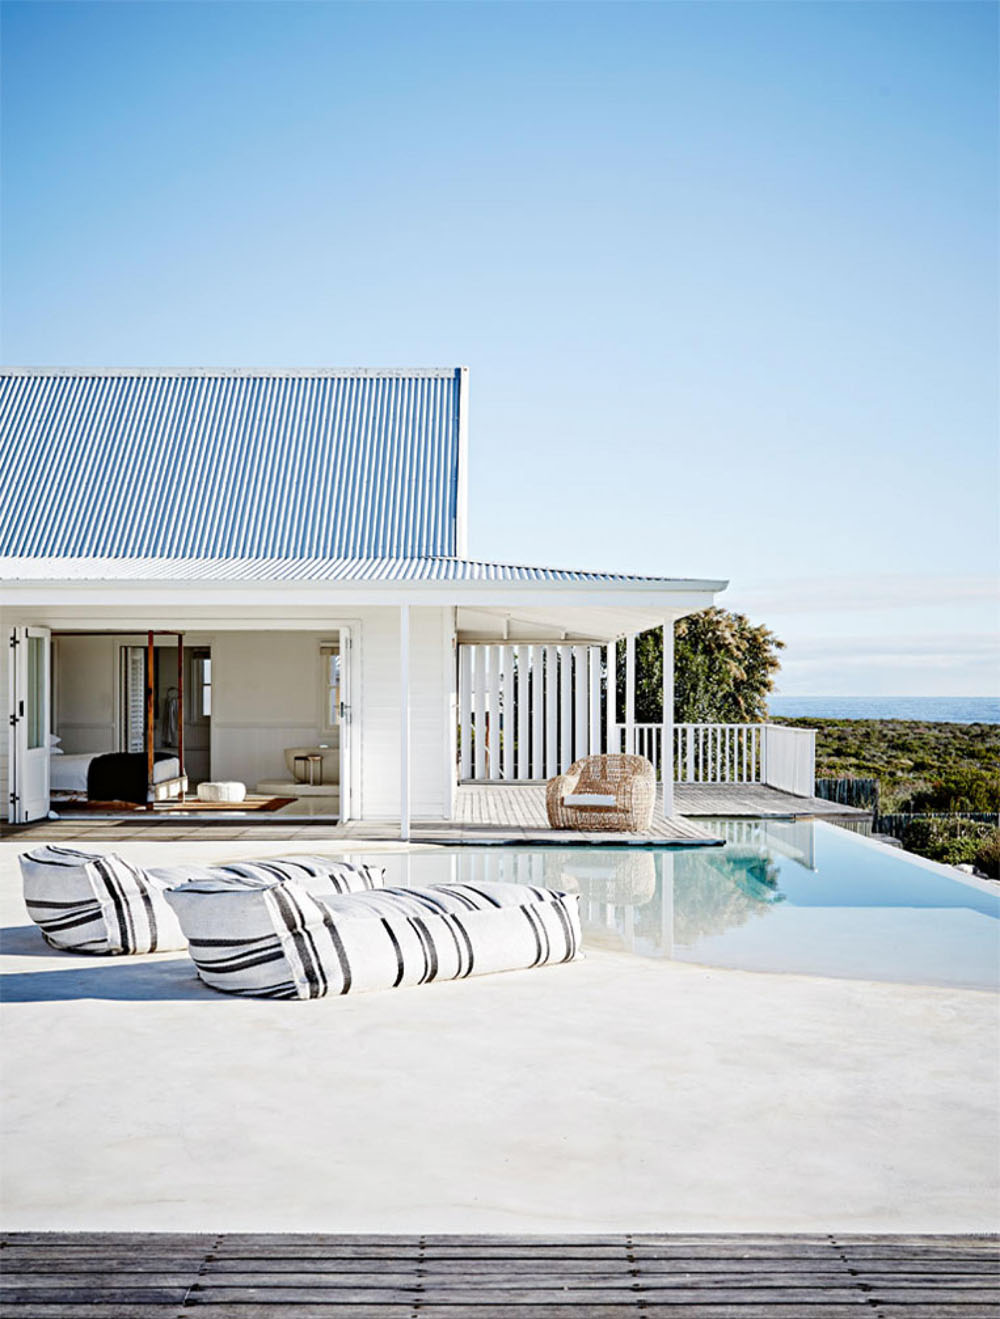 This Relaxed Contemporary Beach House Is The Ultimate  : South Africa Contemporary Beach House7 from www.idesignarch.com size 1000 x 1319 jpeg 182kB